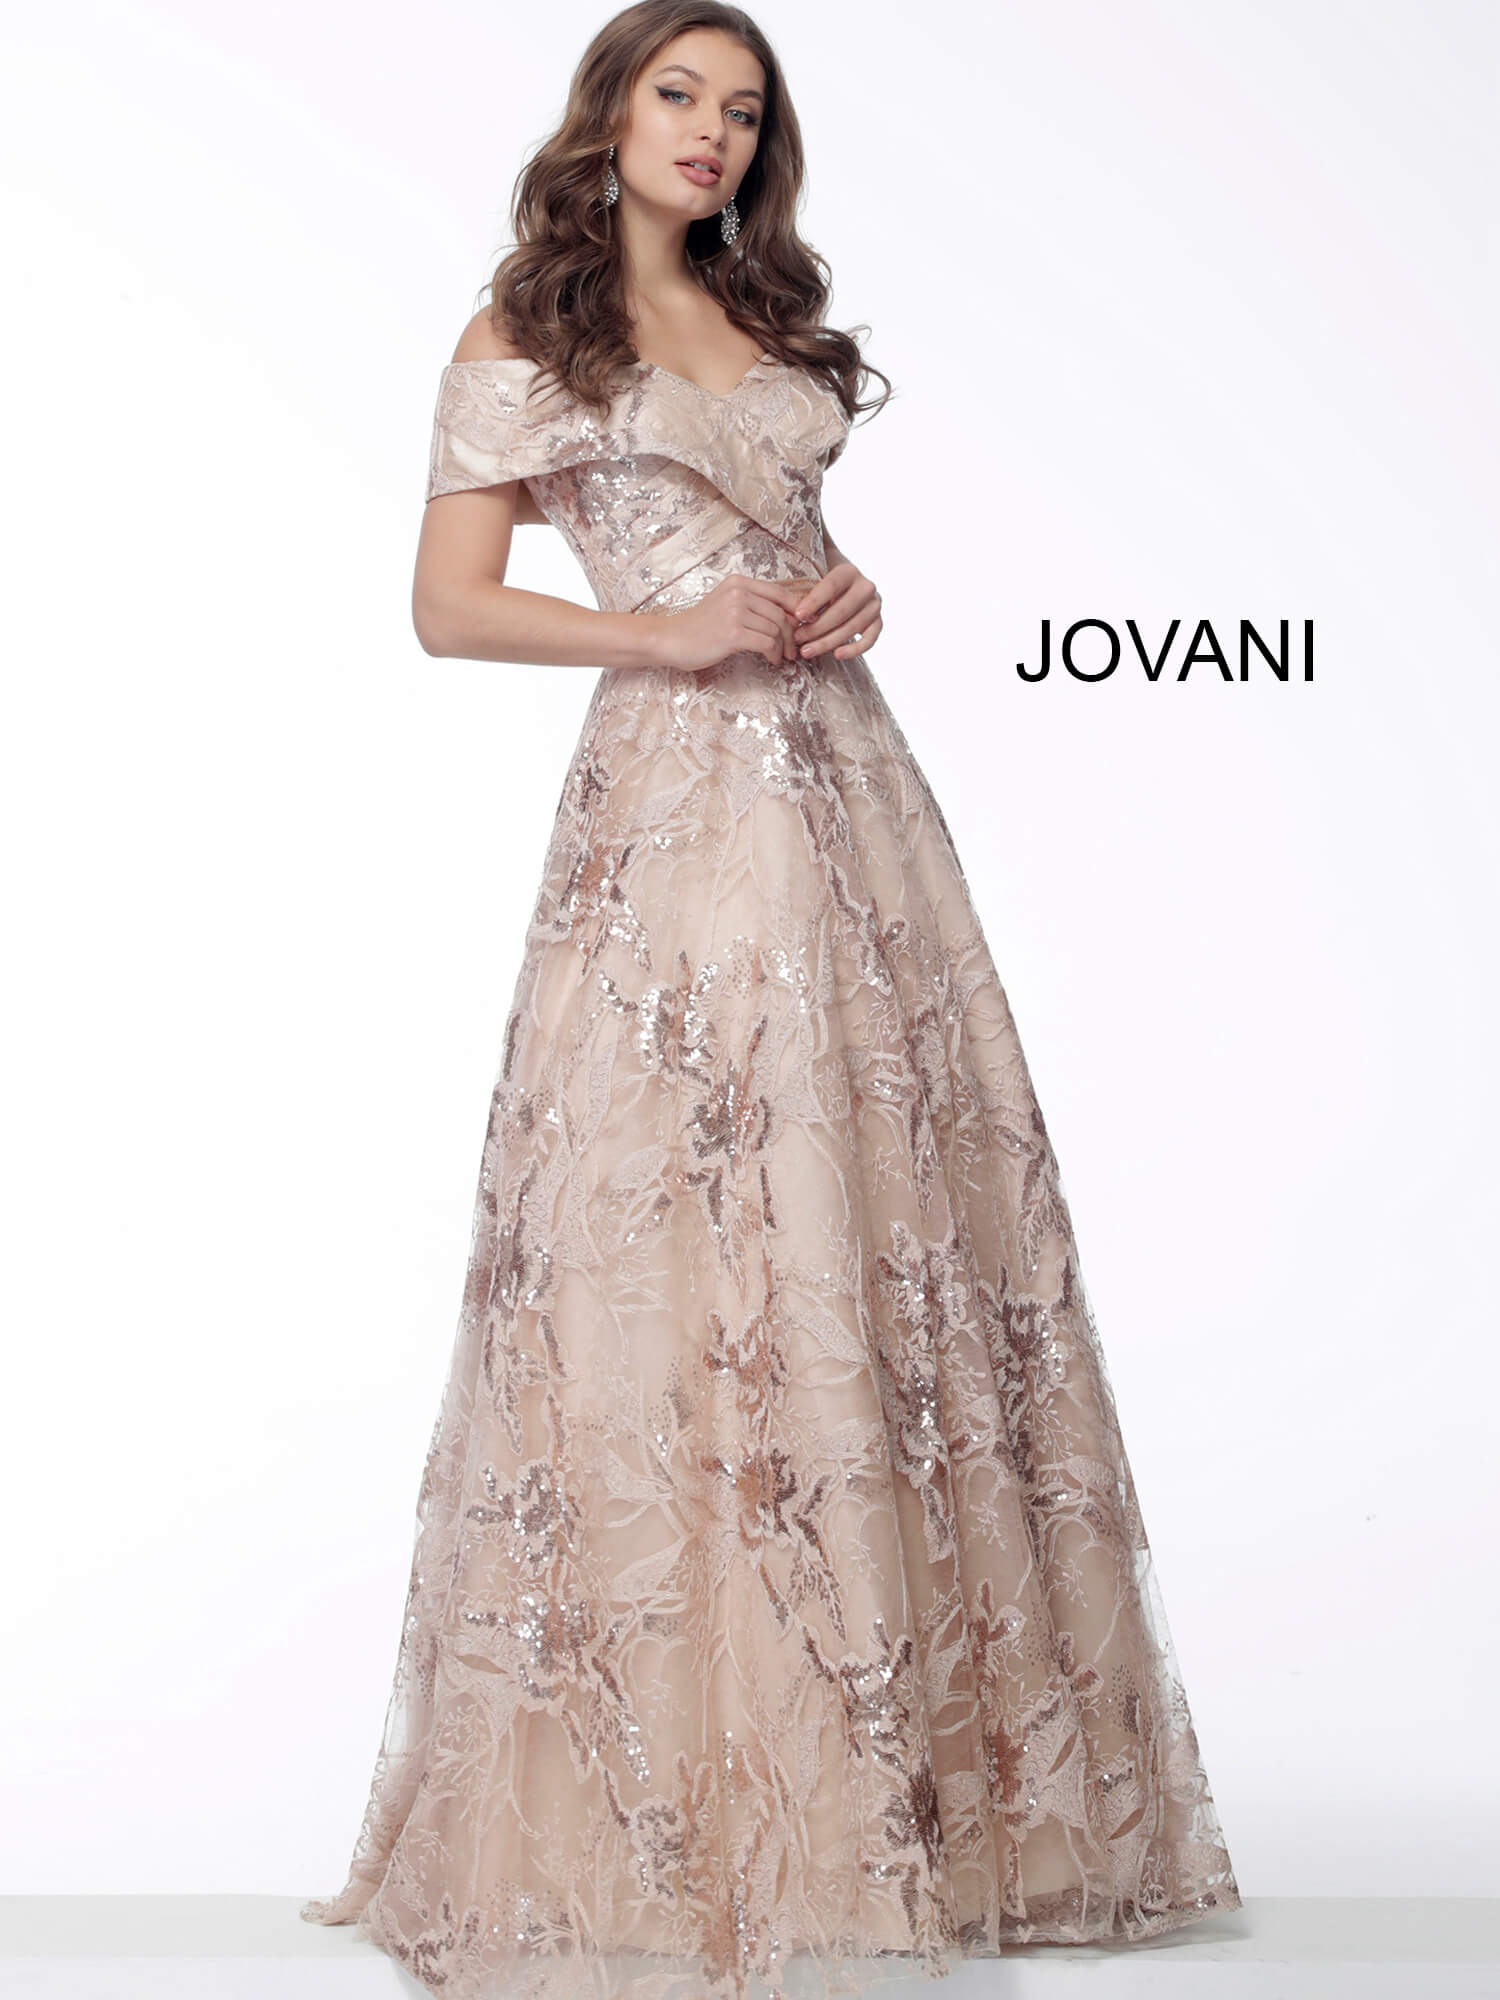 Jovani 67911 lace long aline dress